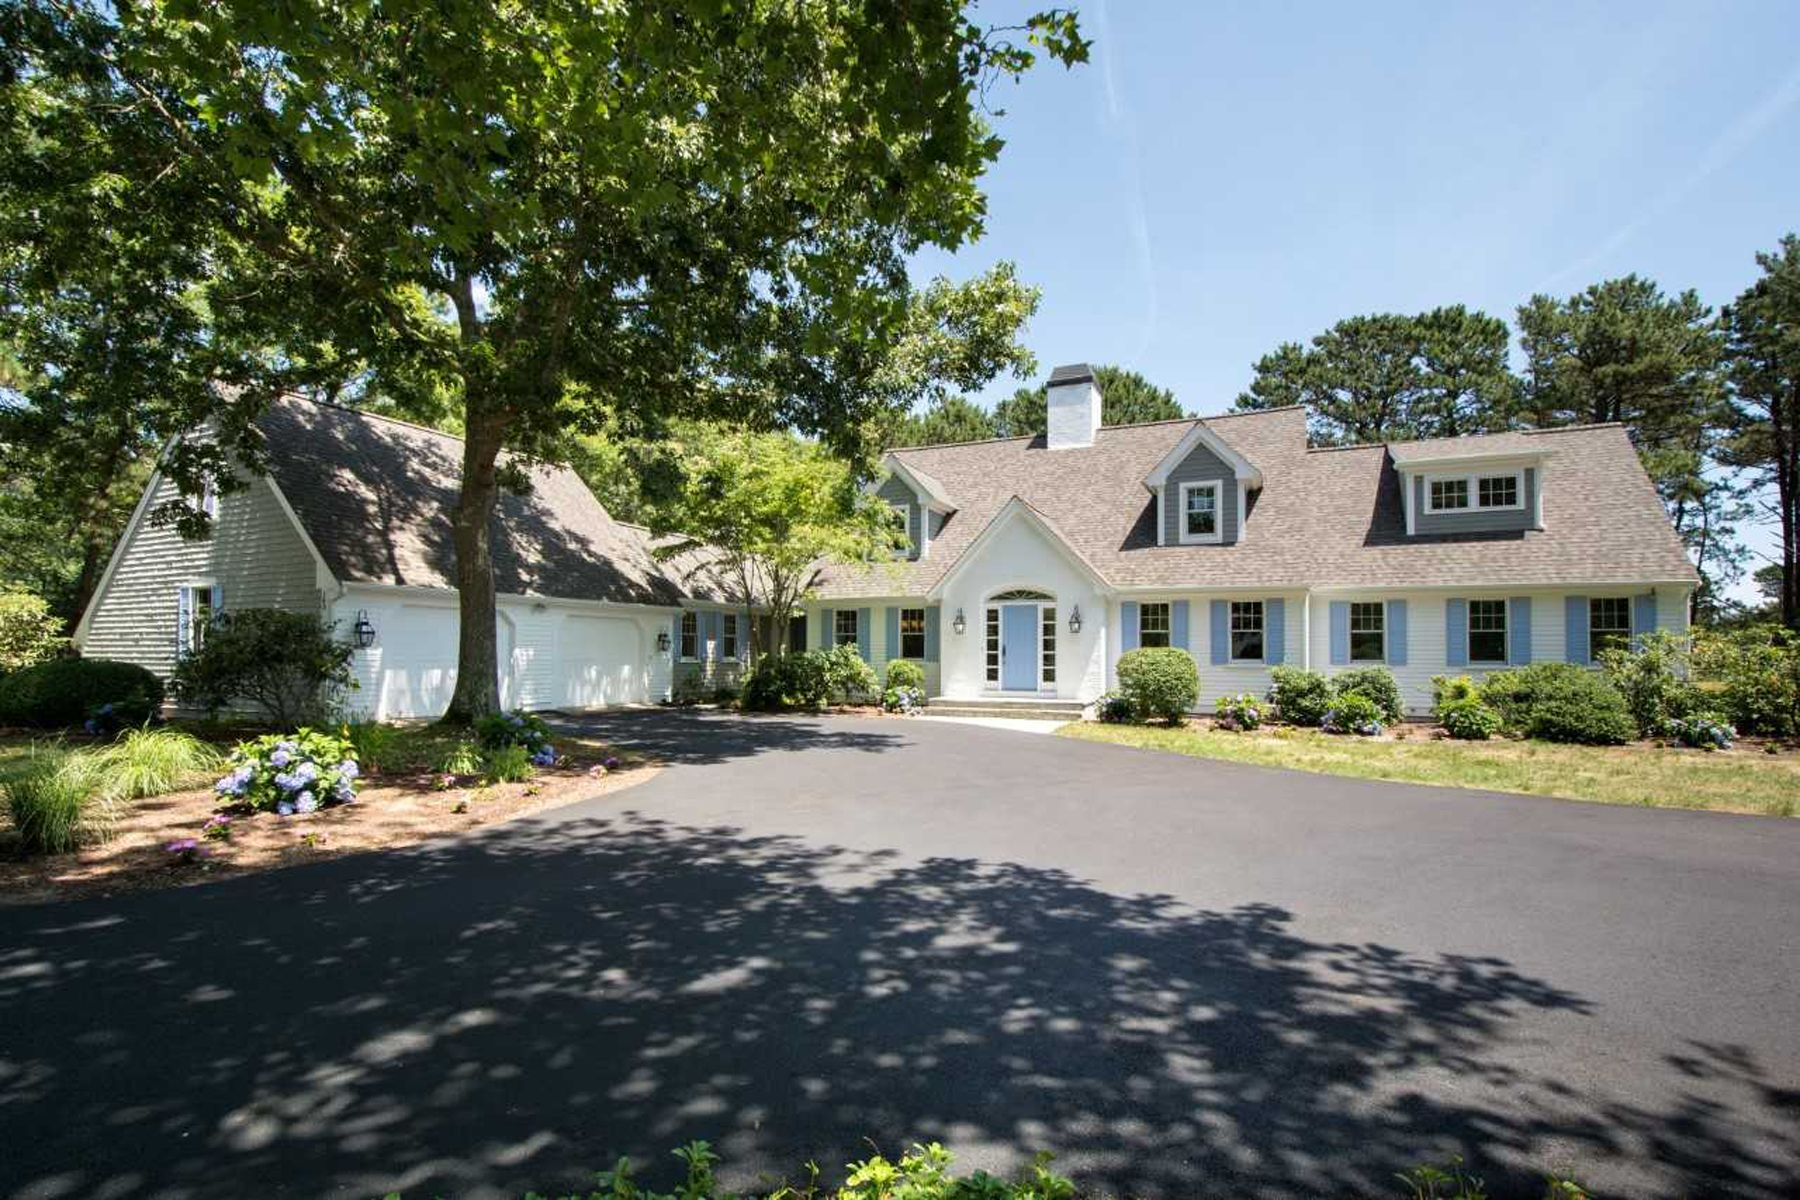 Single Family Homes for Sale at 140 Pineleigh Path Osterville, Massachusetts 02655 United States